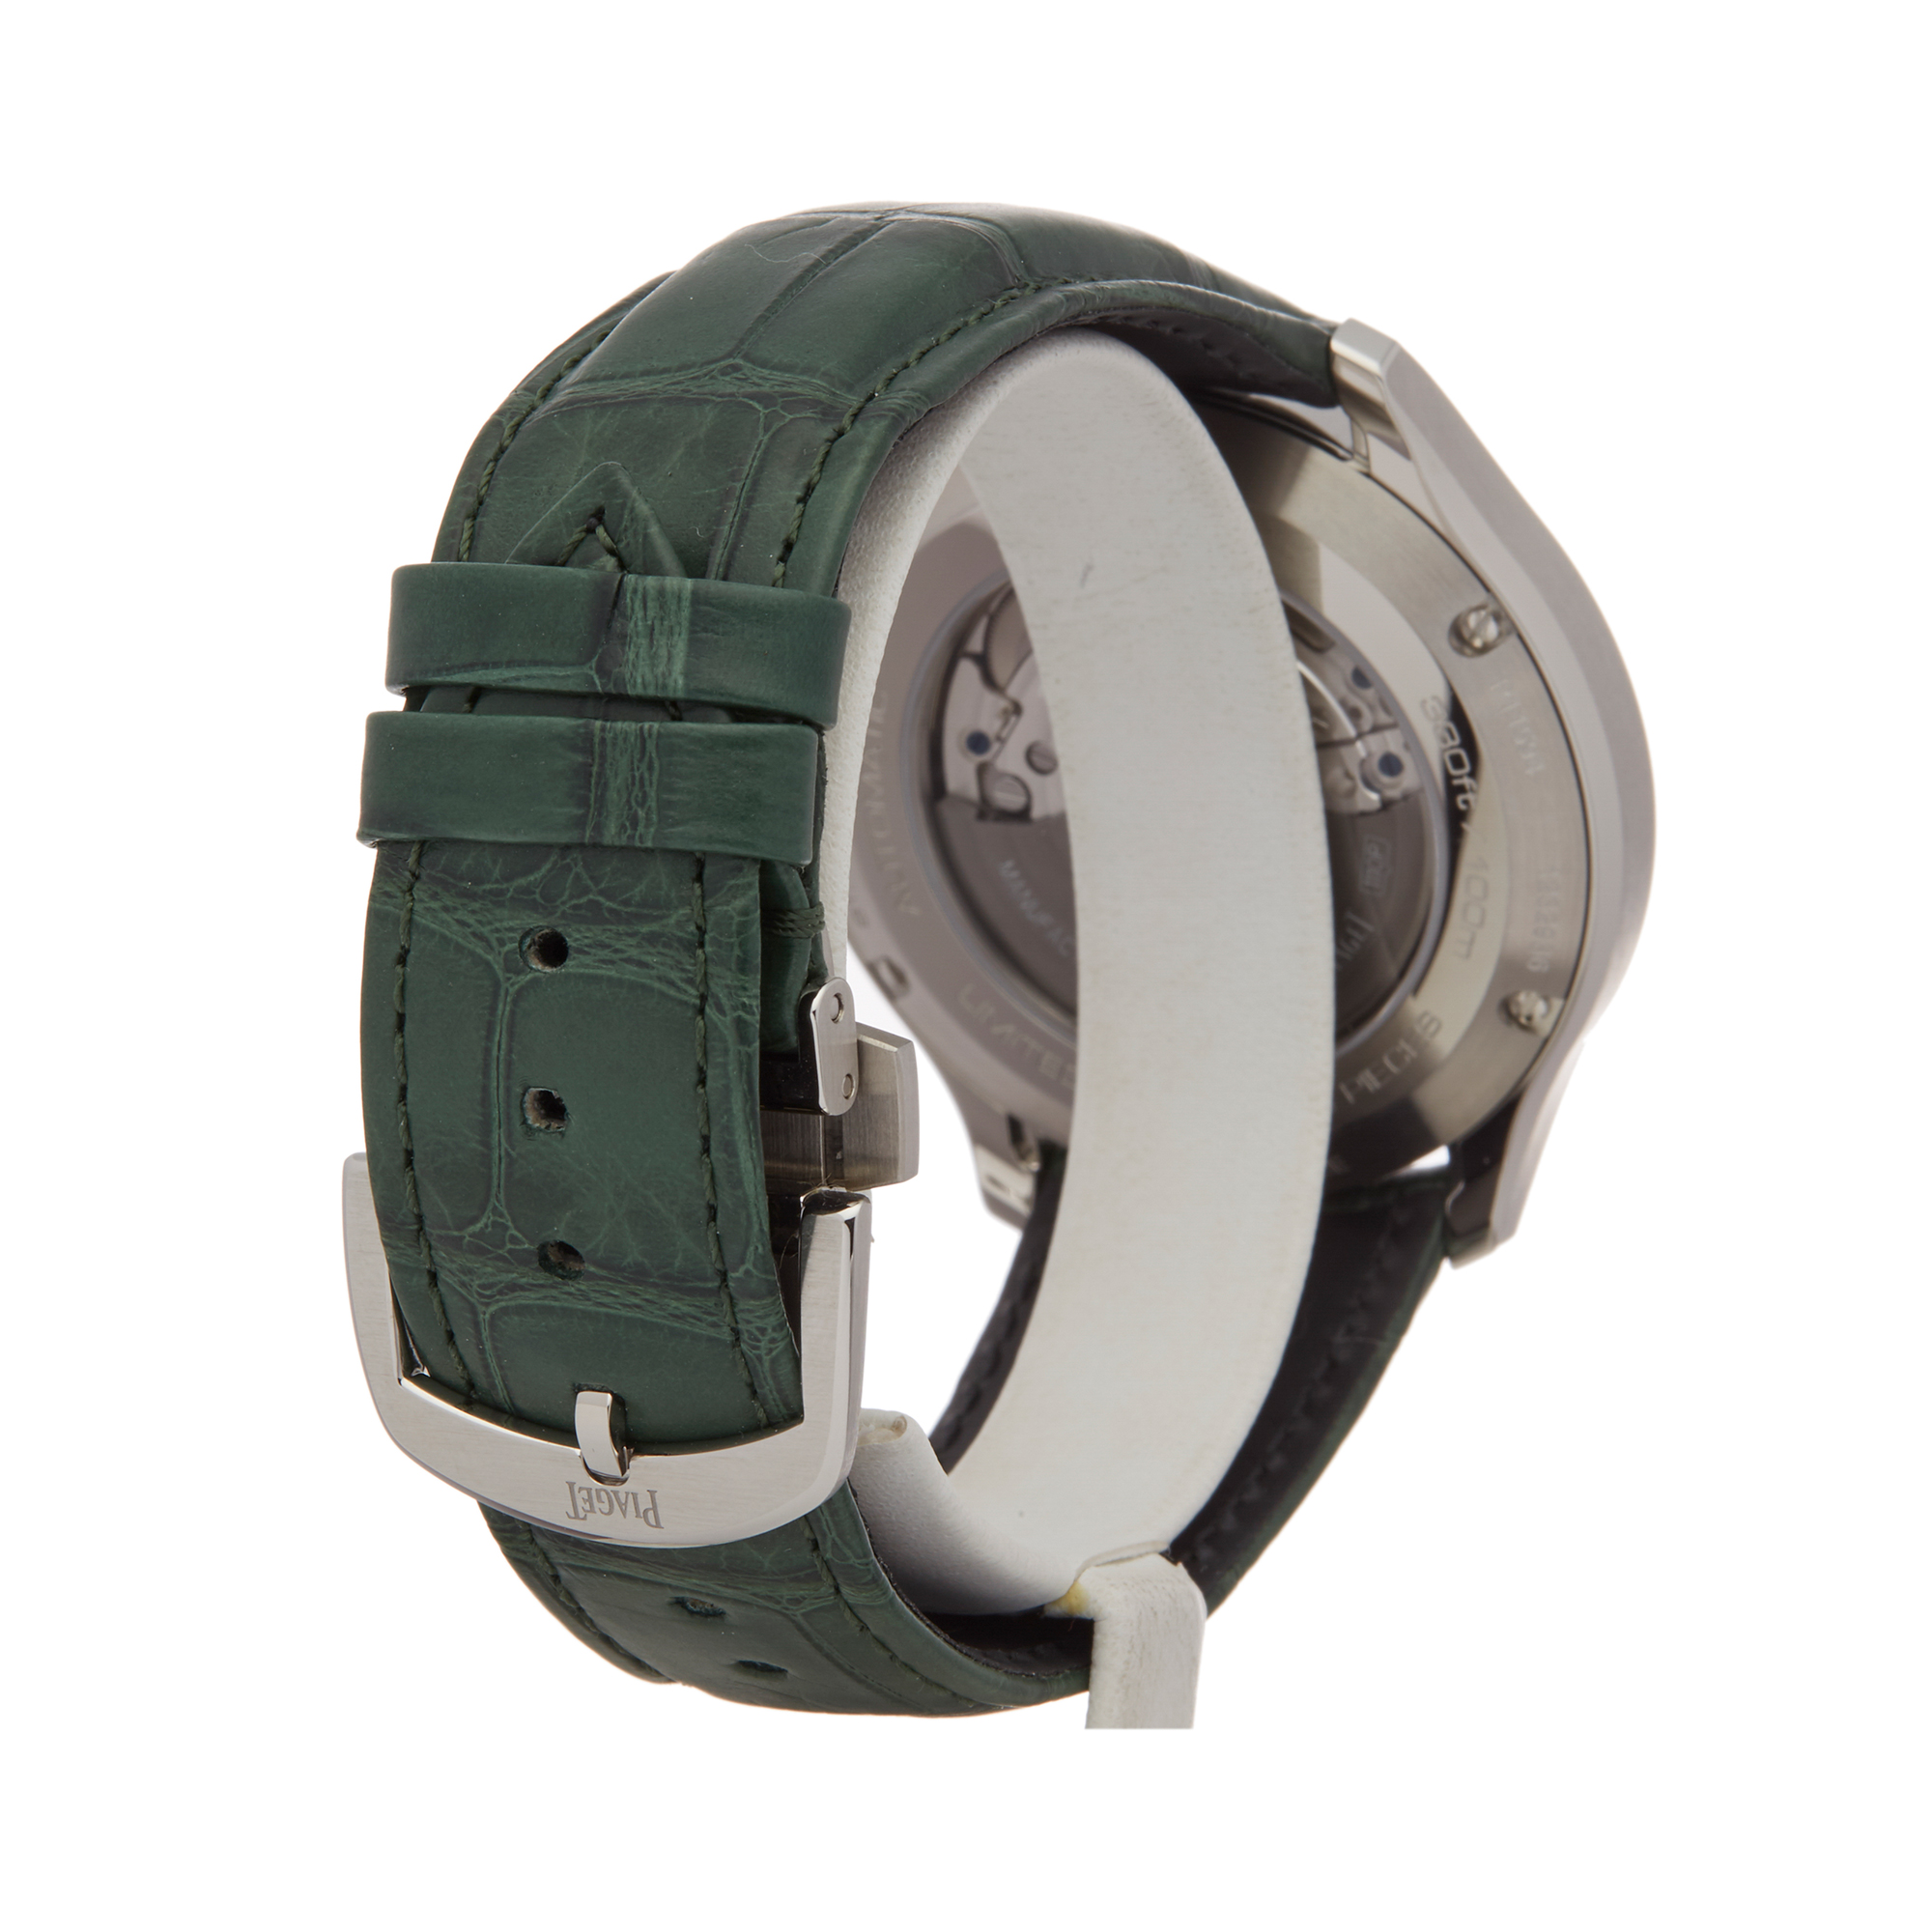 Piaget Polo S GOA44001 Men Stainless Steel Ltd Edition 500 Pieces Watch - Image 5 of 8